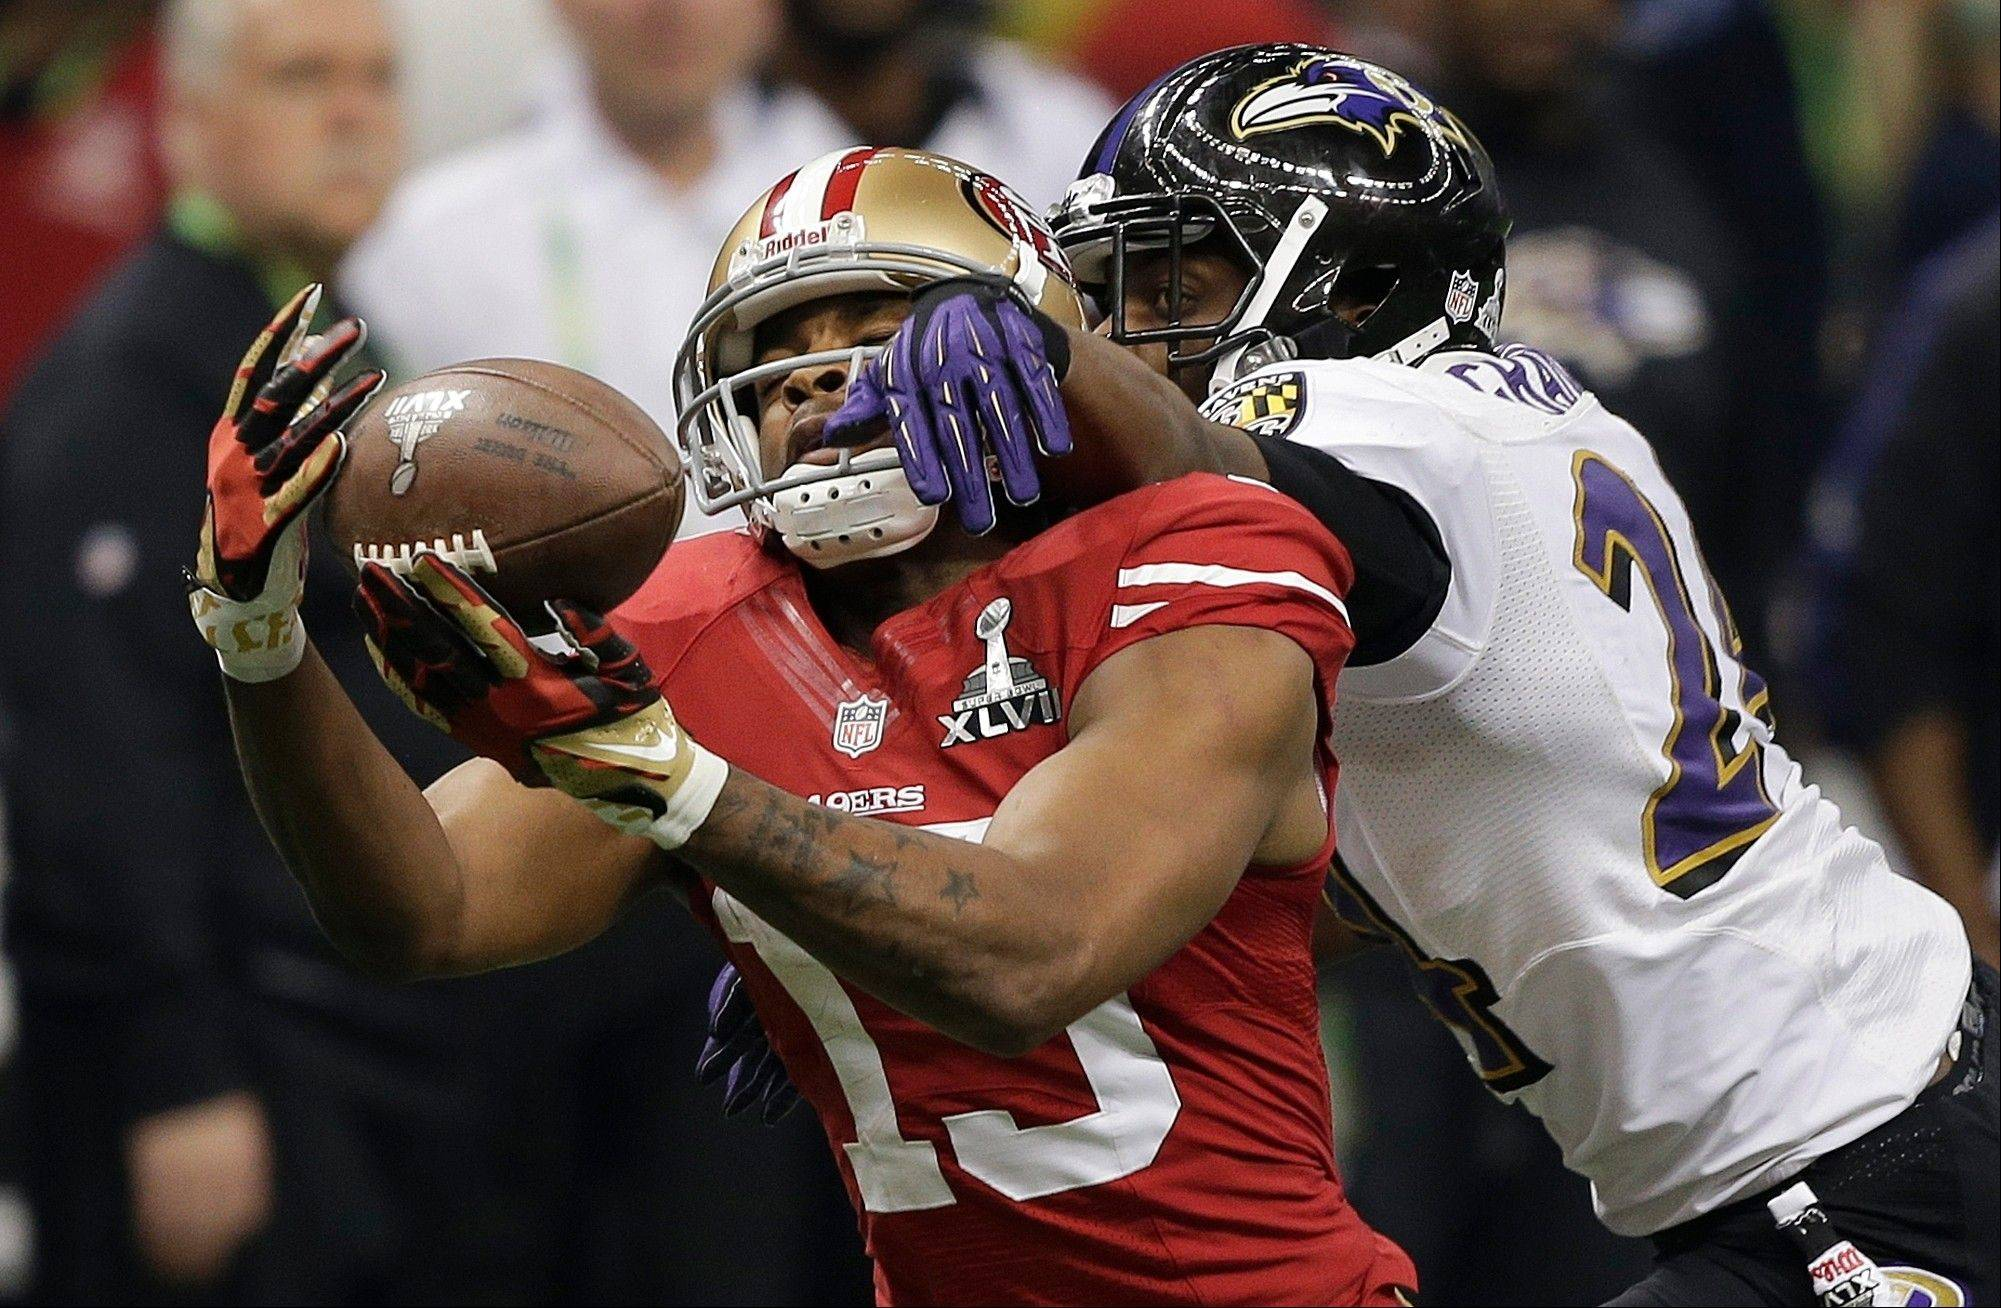 Baltimore Ravens cornerback Corey Graham (24) breaks up a pass intended for San Francisco 49ers wide receiver Michael Crabtree (15) during the second half.